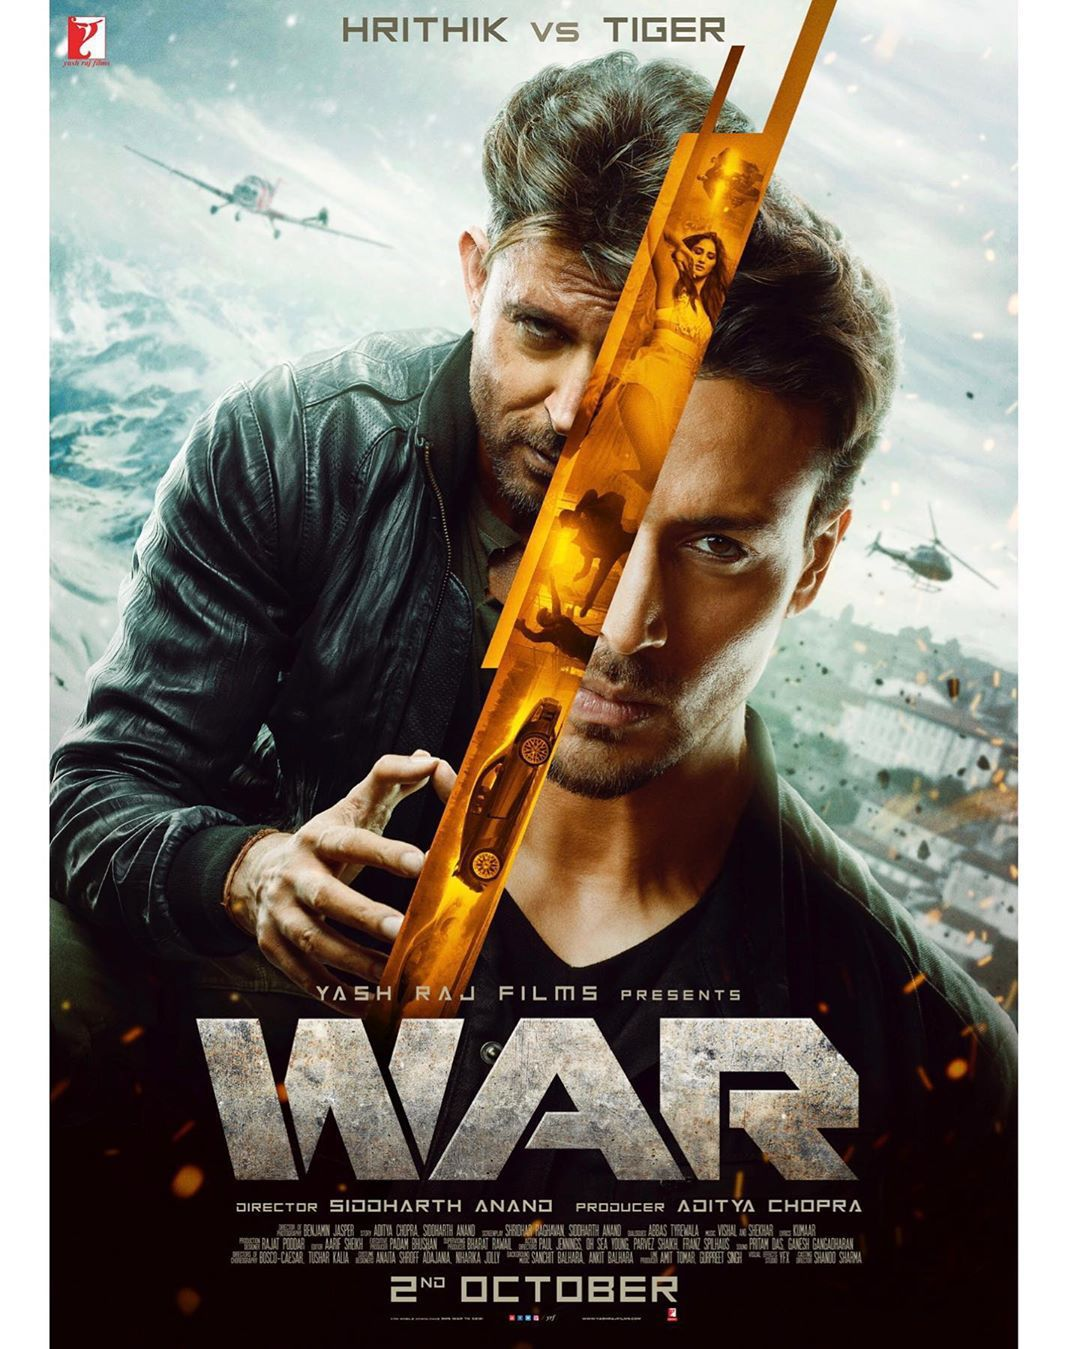 WAR (Hrithik VS Tiger) Film Release 2nd October (With